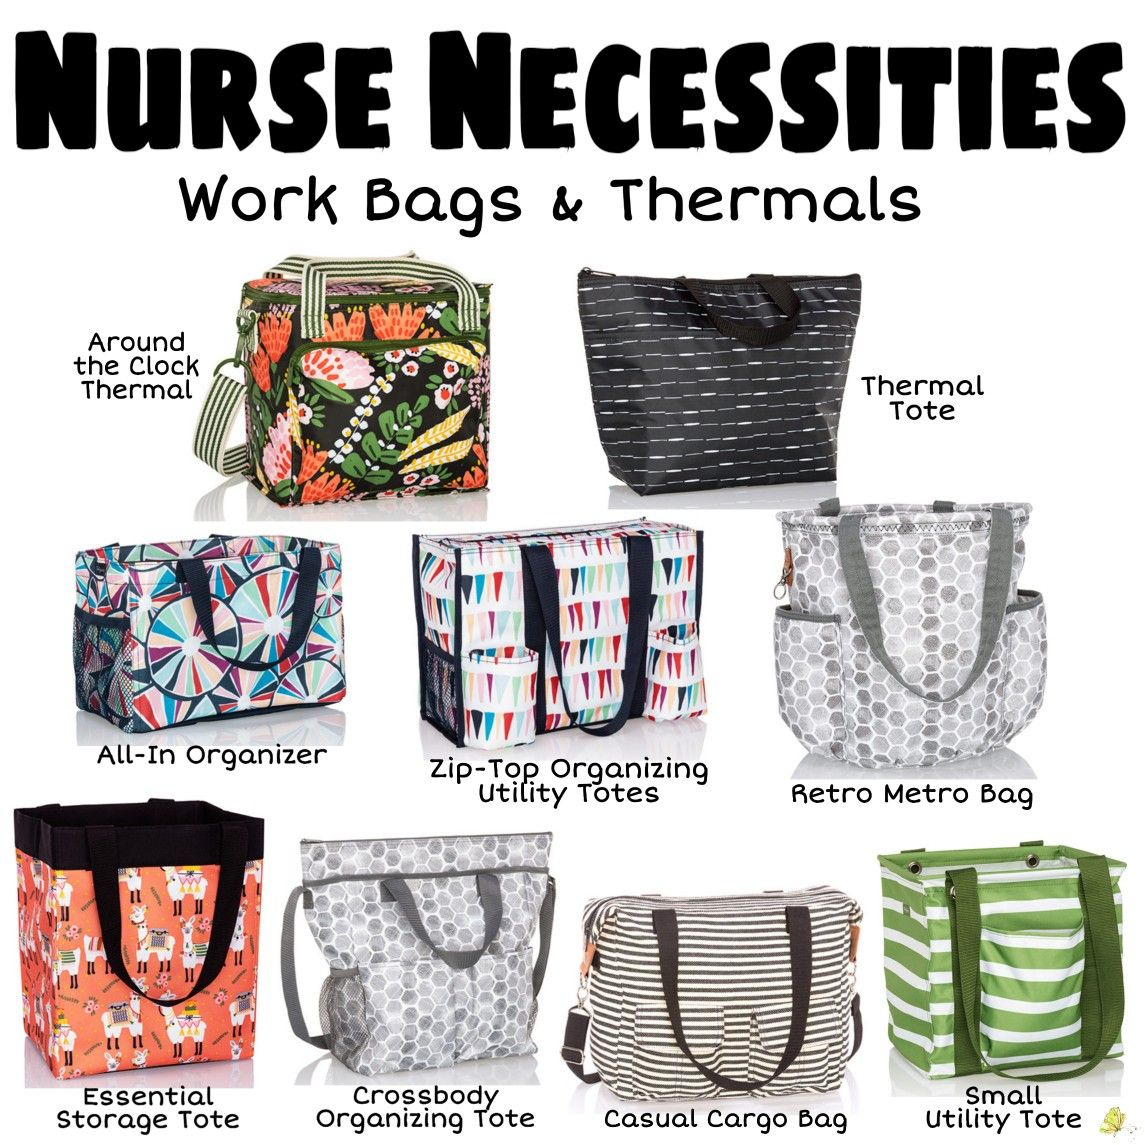 Nurse Necessities Work Bags Thermals March